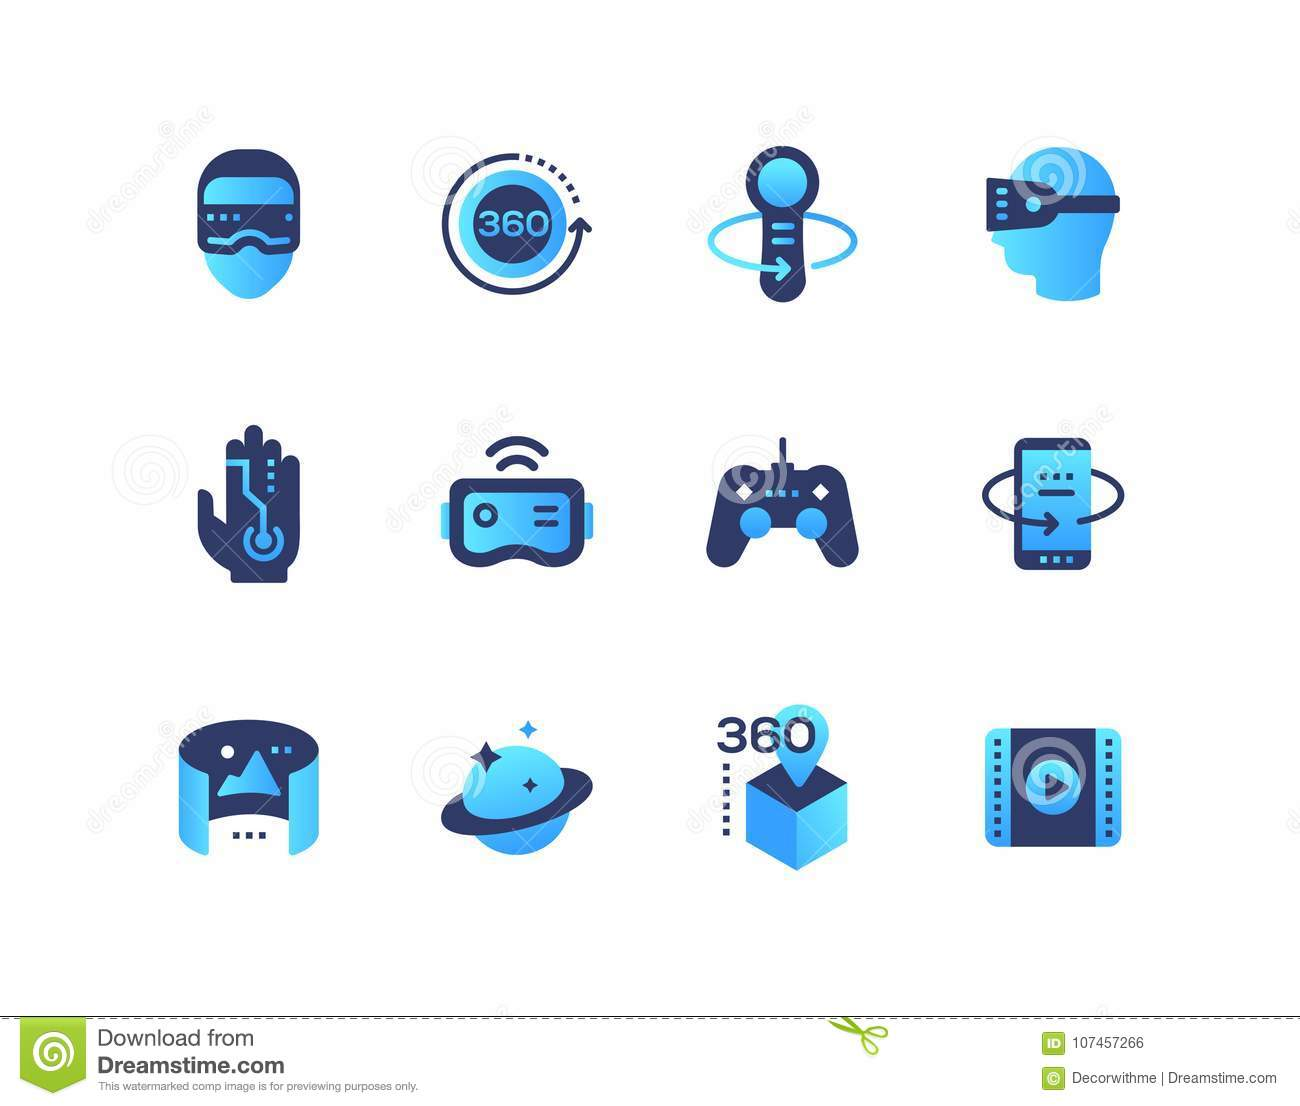 6ec1d8191e7 Virtual reality - set of flat design style icons. High quality blue images  of Vr glasses